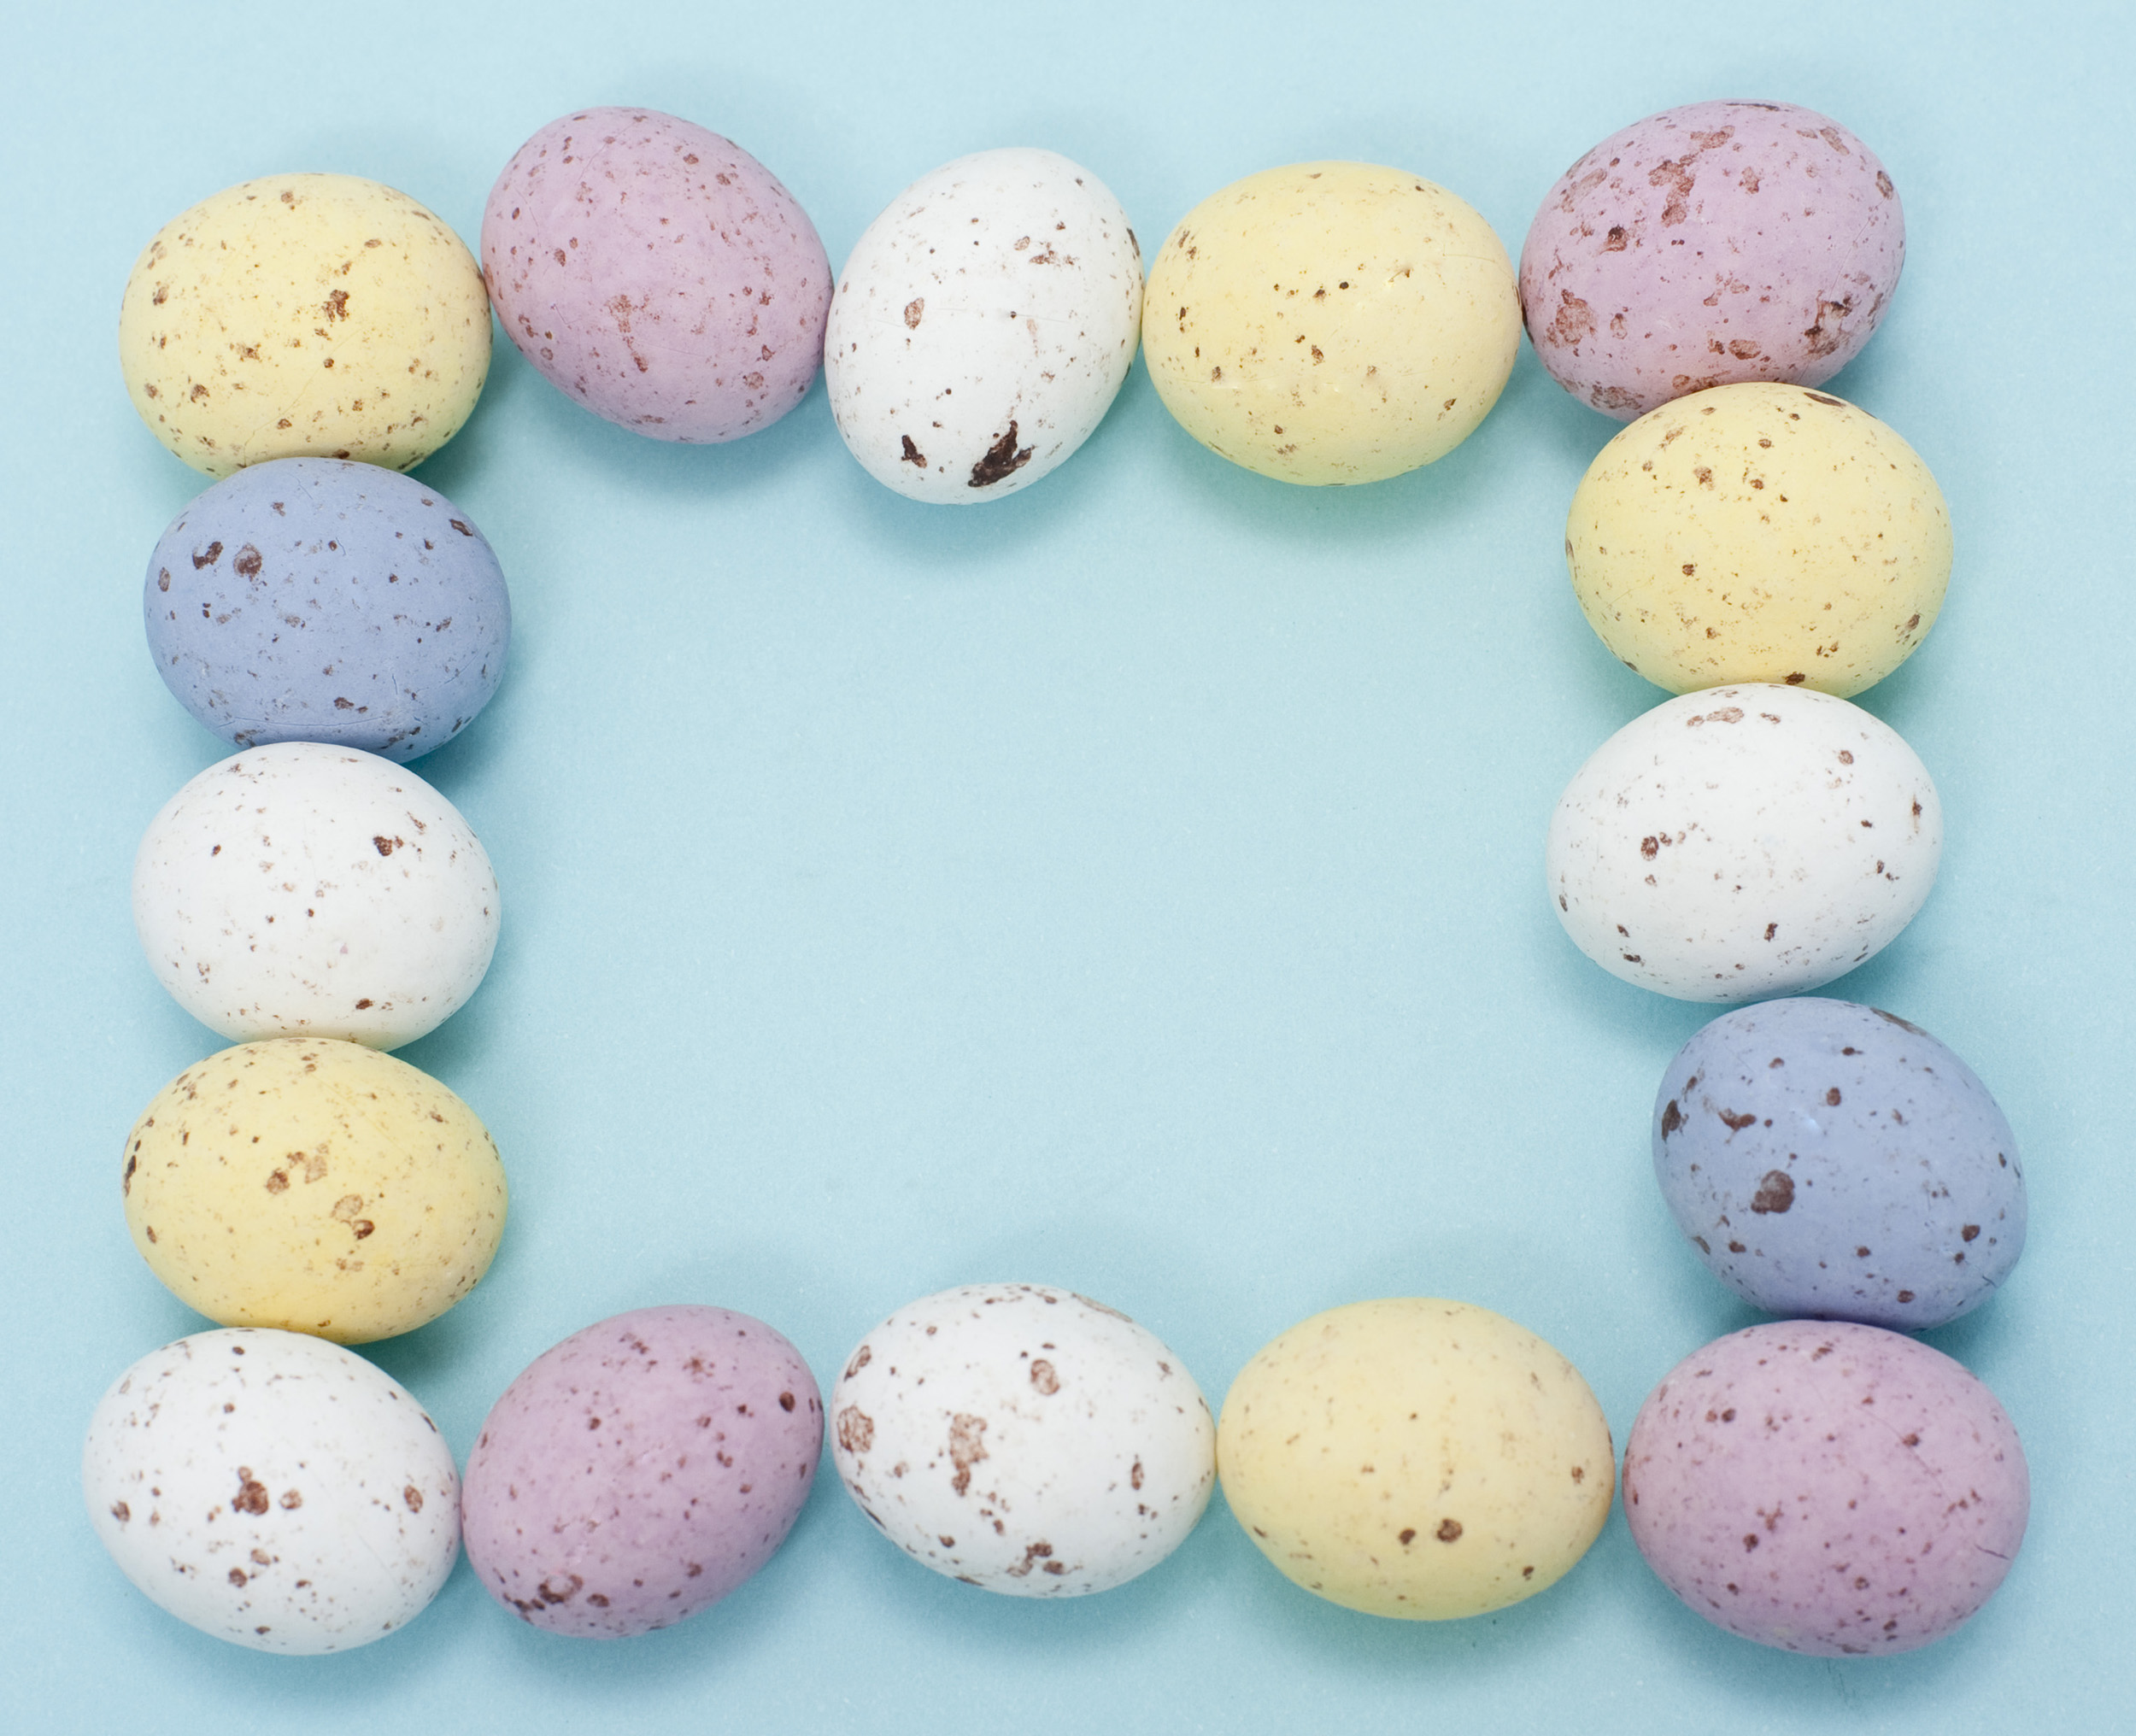 Frame with blank copyspace bordered by speckled candy Easter eggs in pastel shades of pink, yellow, white and blue, blue background.